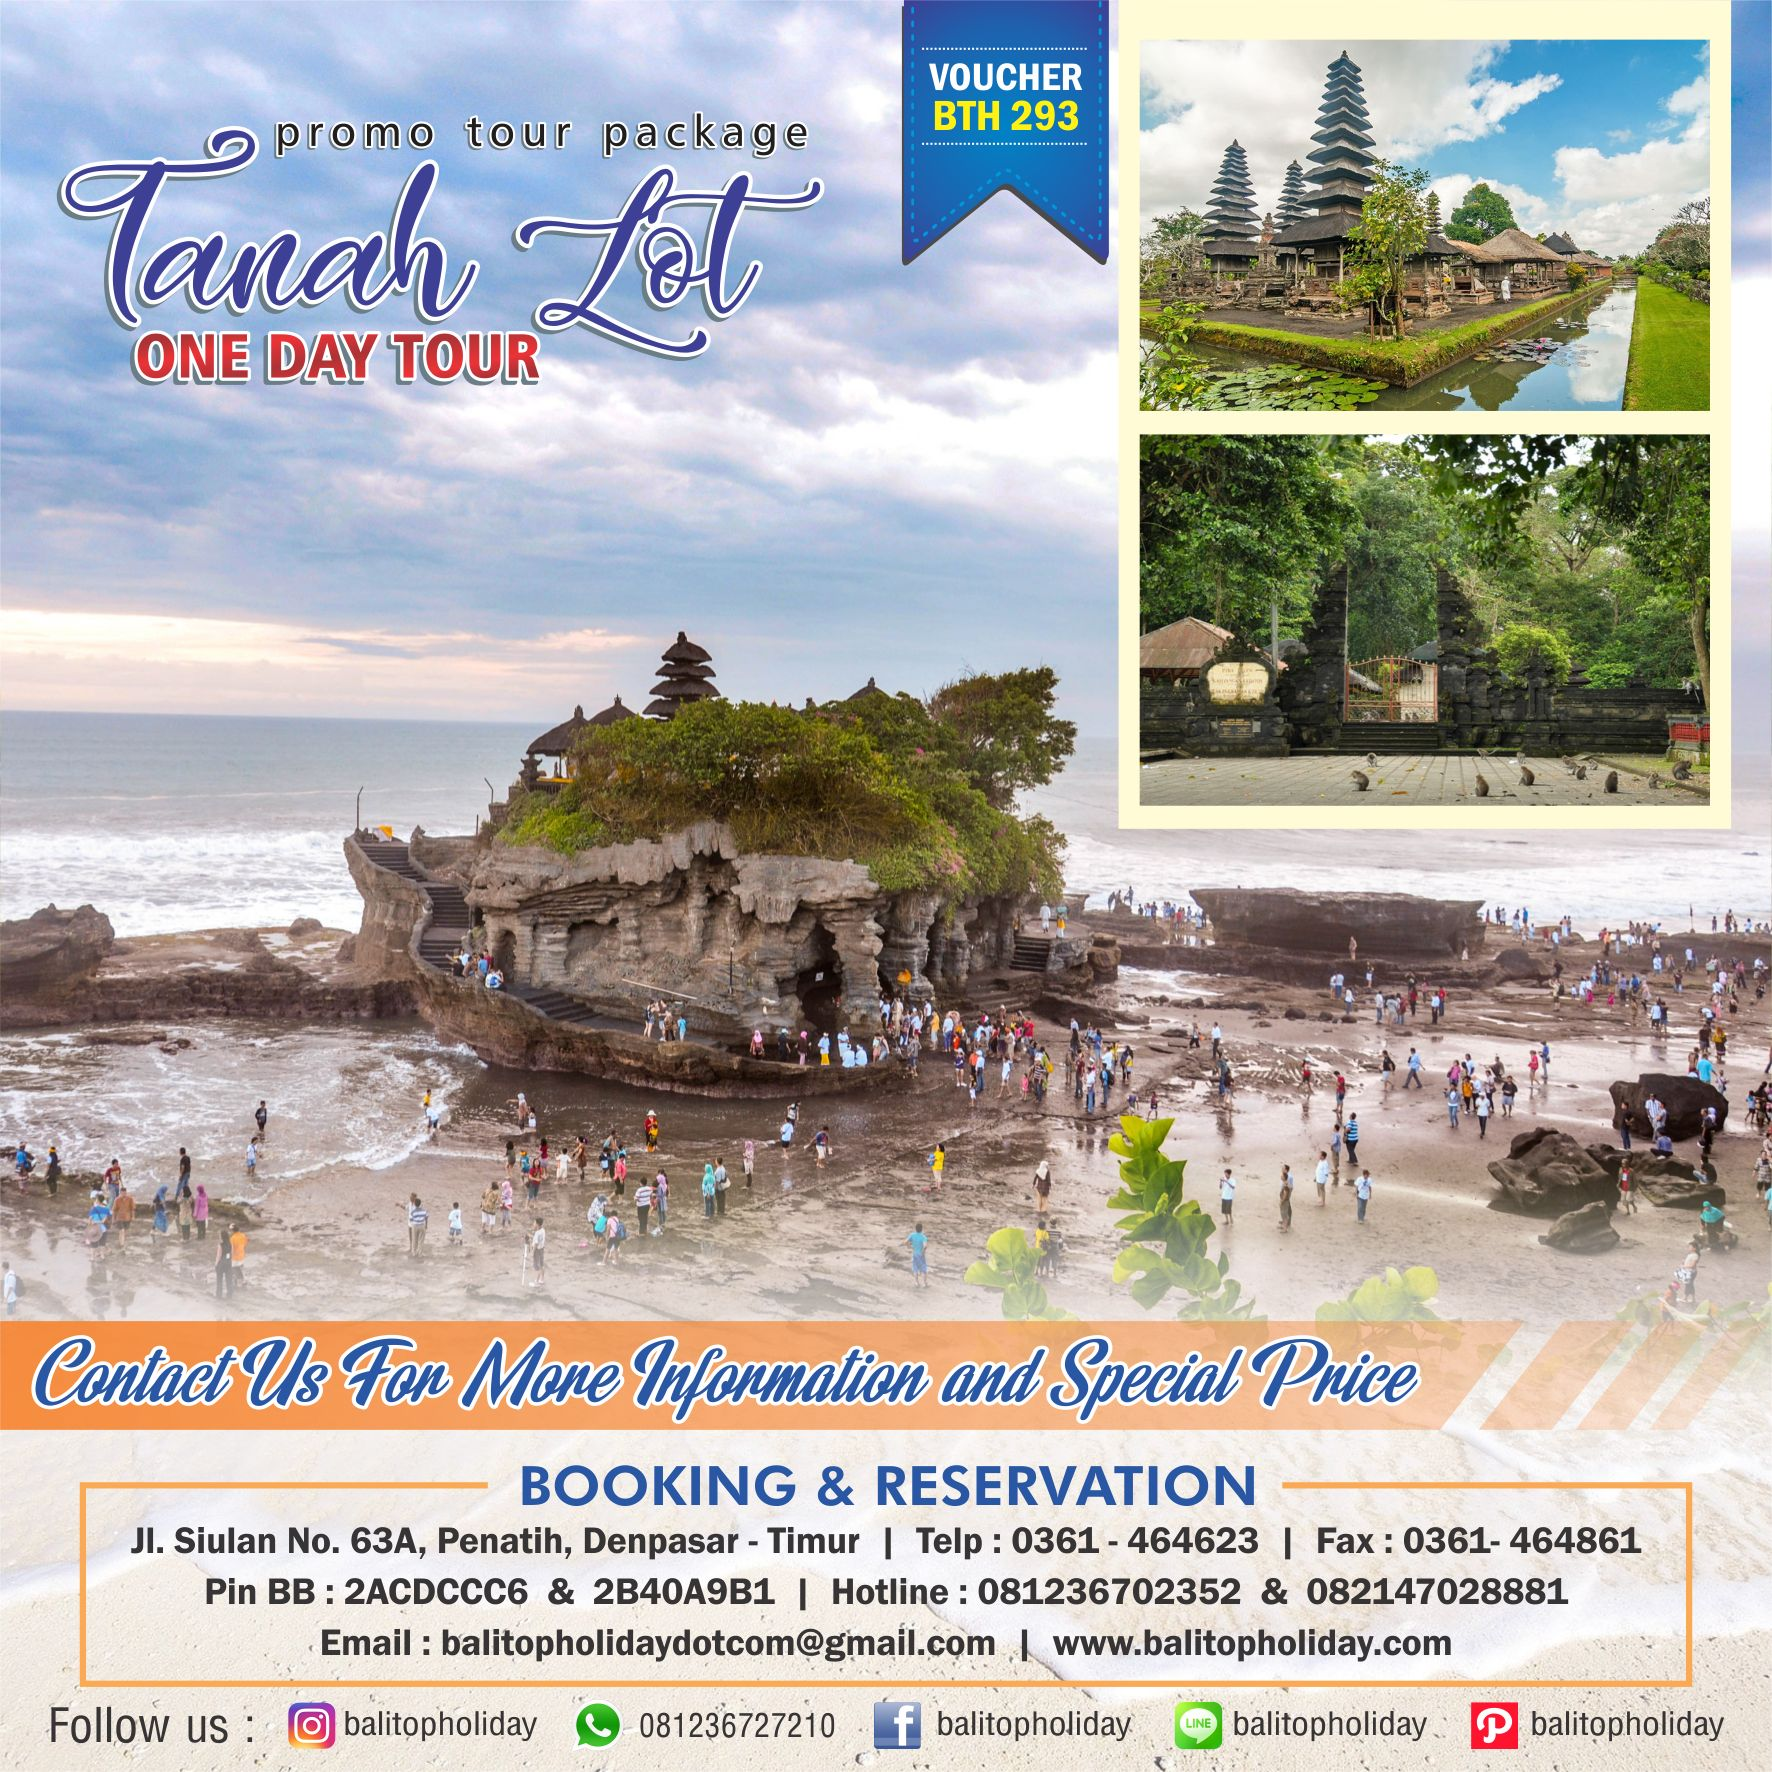 Tanah Lot One Day Tour BTH 293